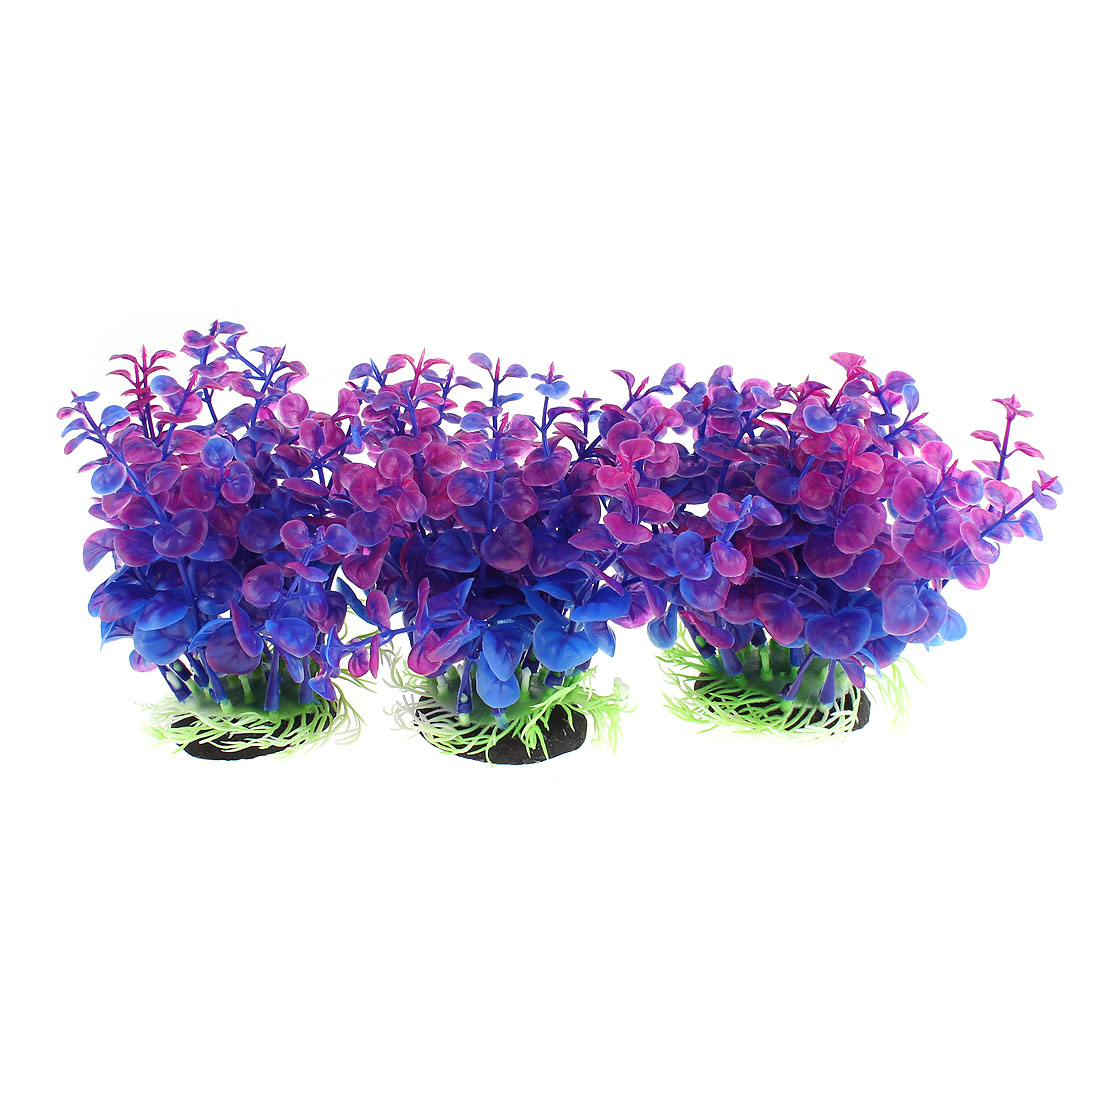 "Aquarium Emulation Underwater Plant Ornament Purple 5"" High 3pcs"